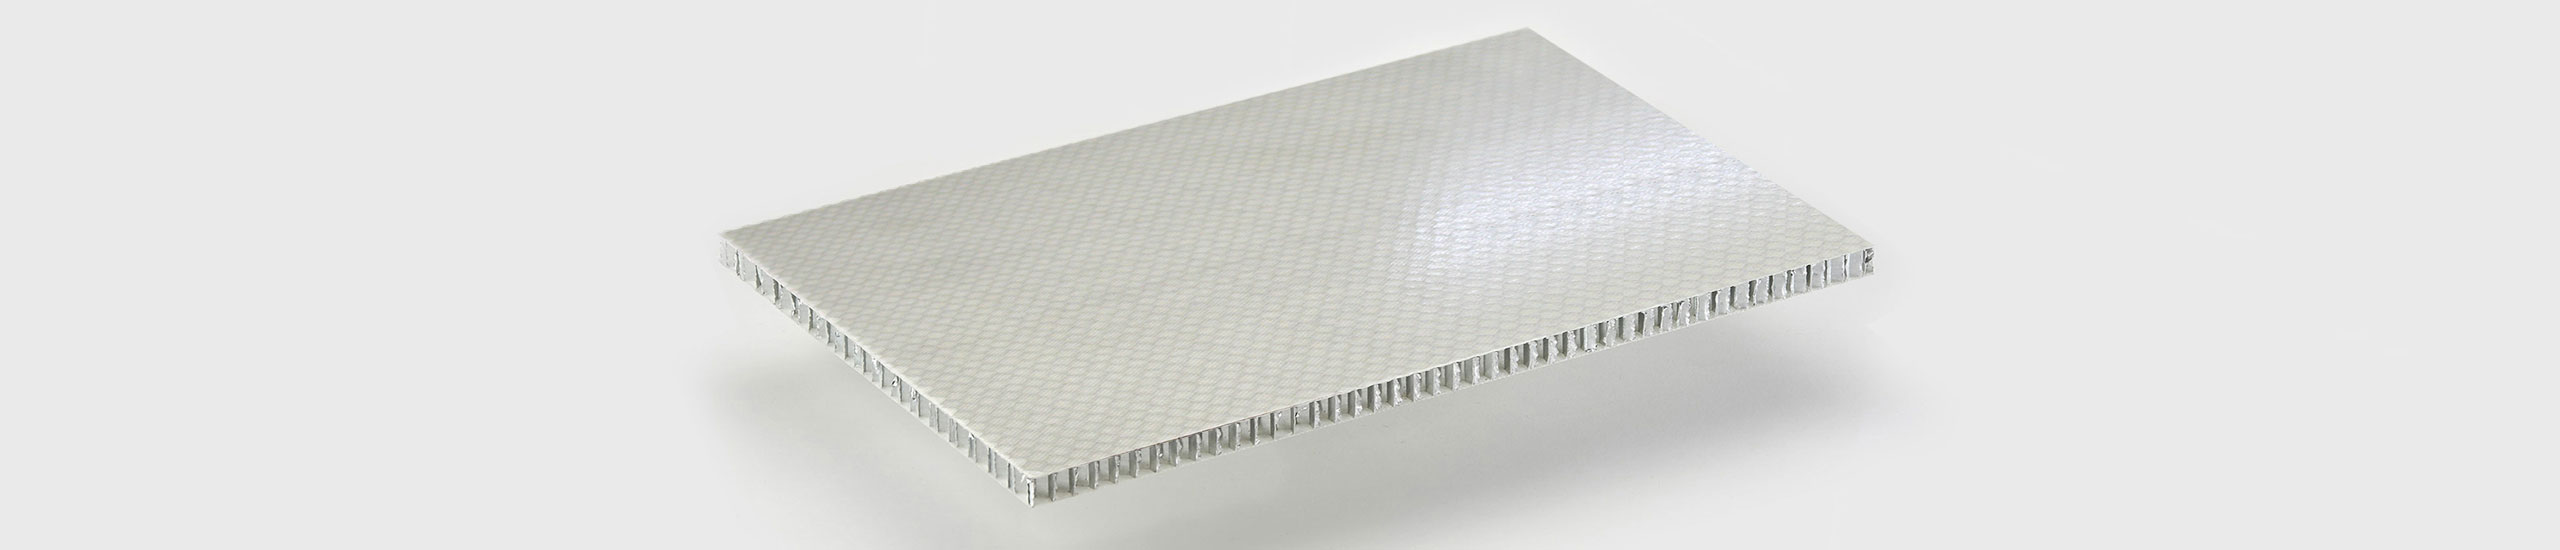 ALUSTEP ® 300 - D is a lightweight composite panel with an aluminium honeycomb core faced with fiber glass impregnated with epoxy resin.